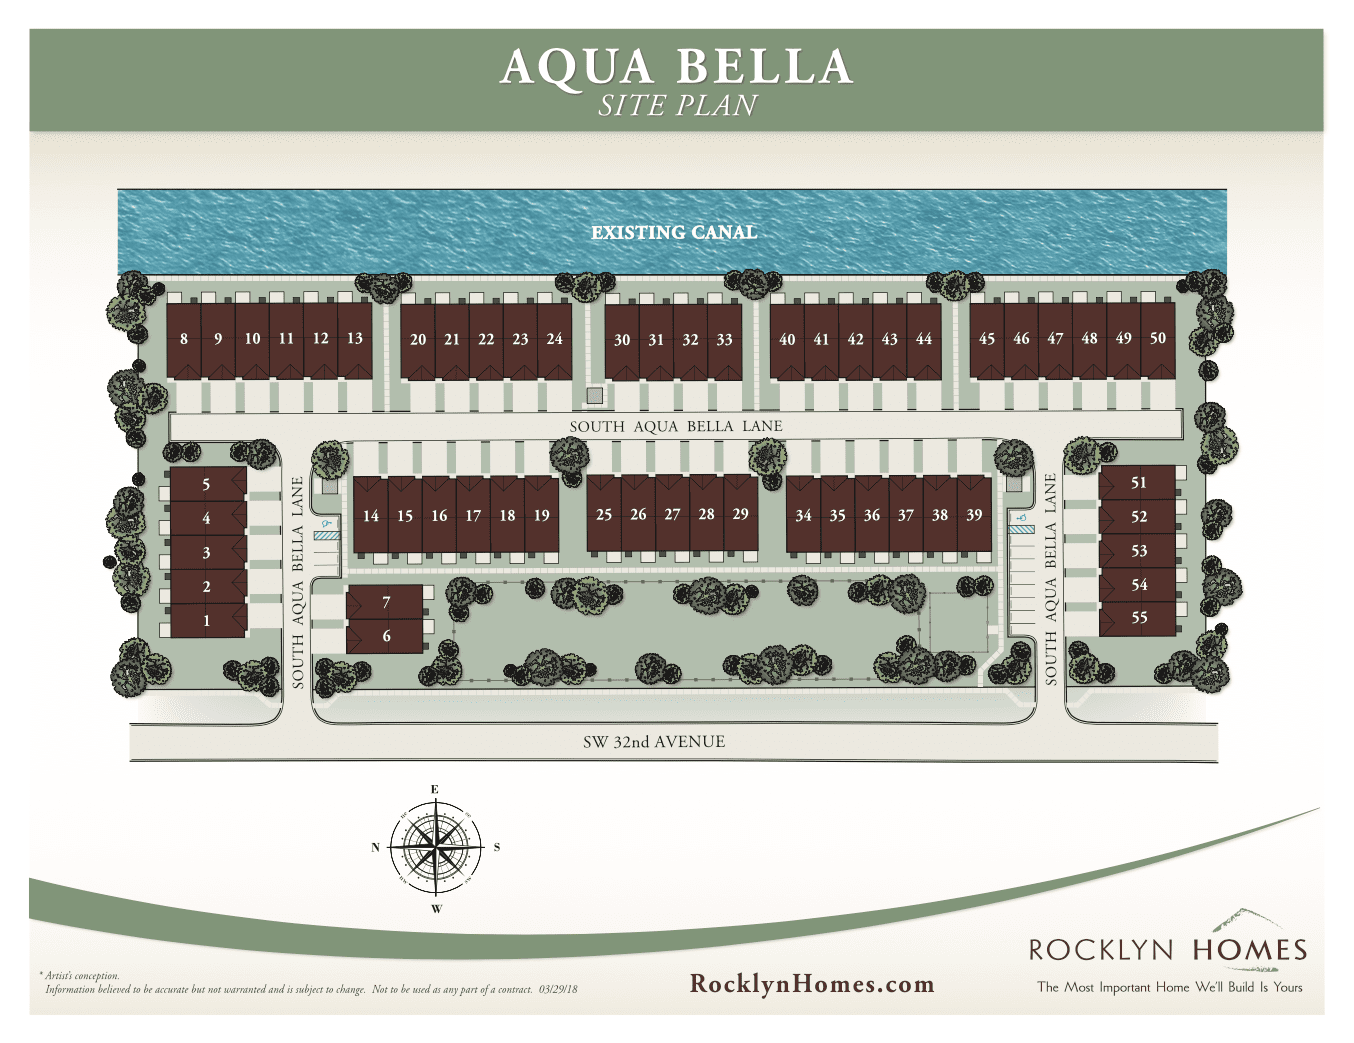 AquaBella Site Plan